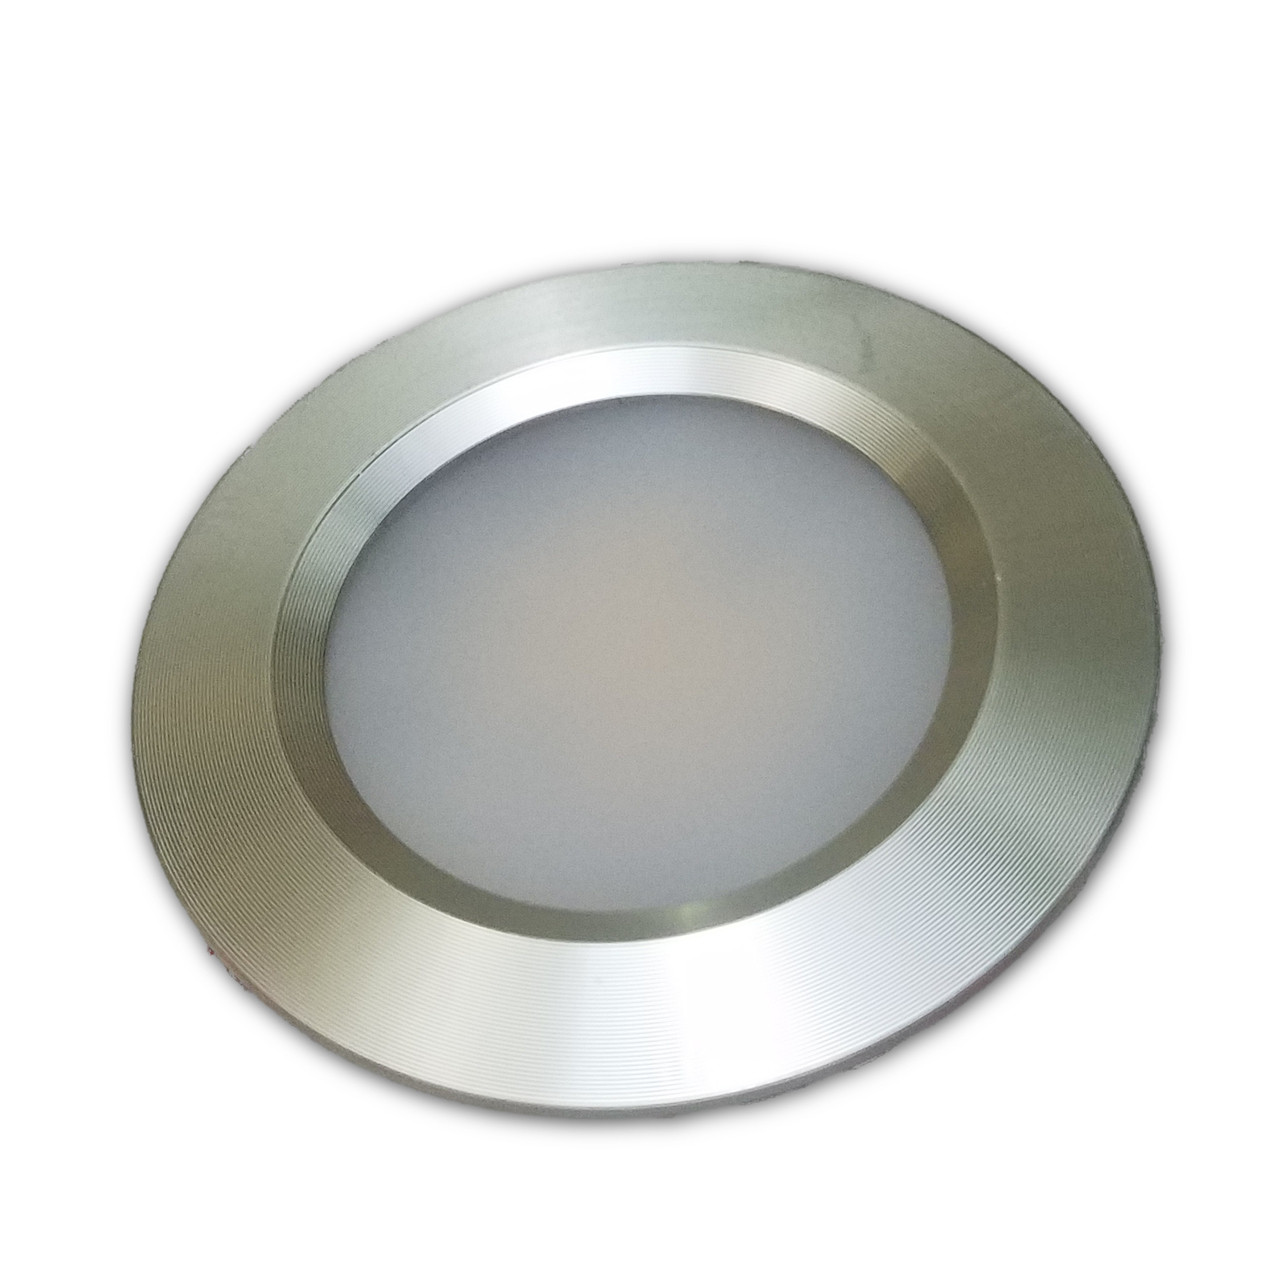 25w 18 led recessed ceiling light for boats 12v or 24v recessed ceiling light fixture silver bezel 12v24v led down light aloadofball Image collections